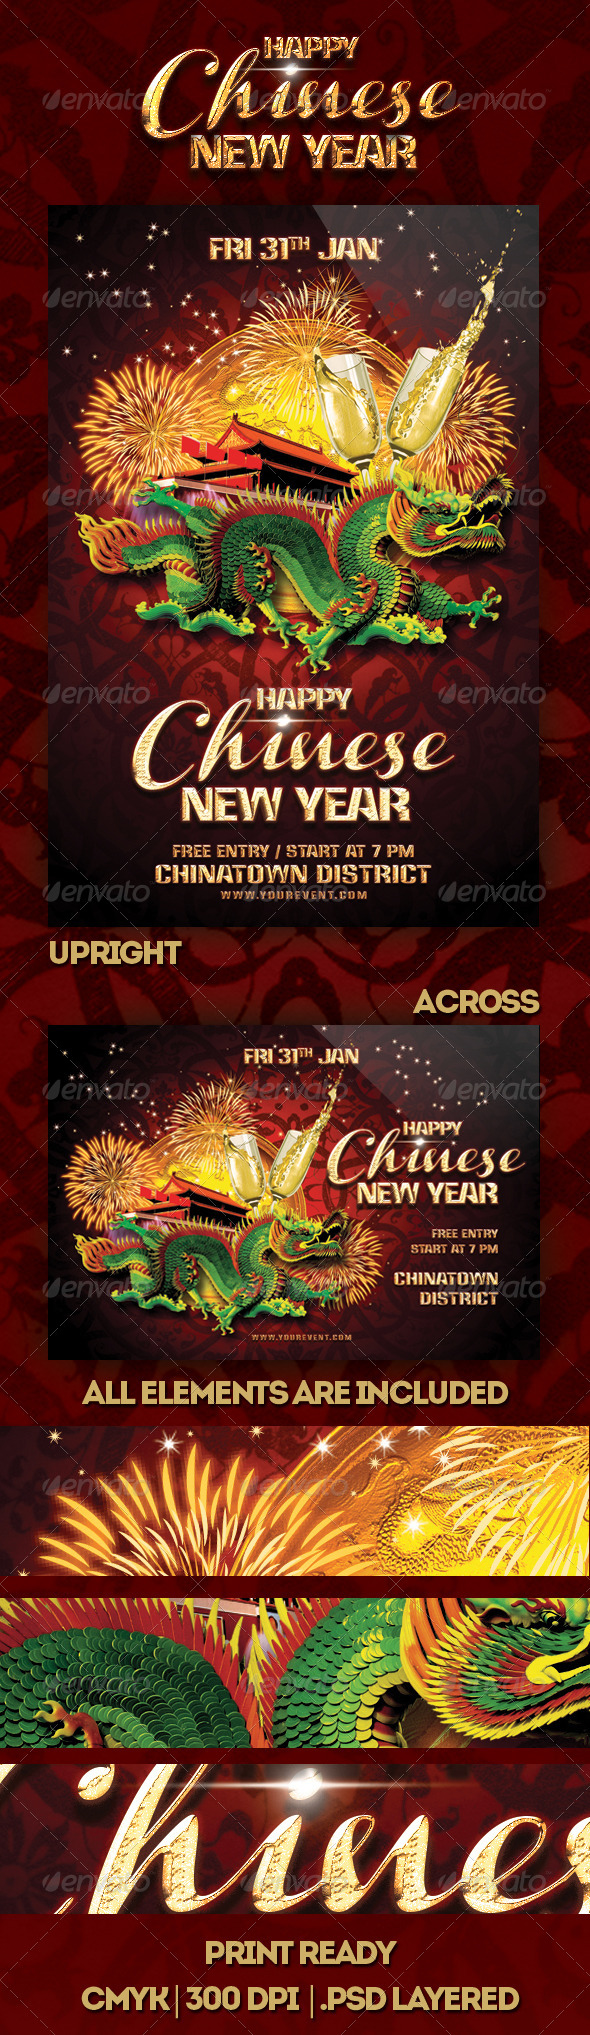 GraphicRiver Happy Chinese New Year Flyer 6524423